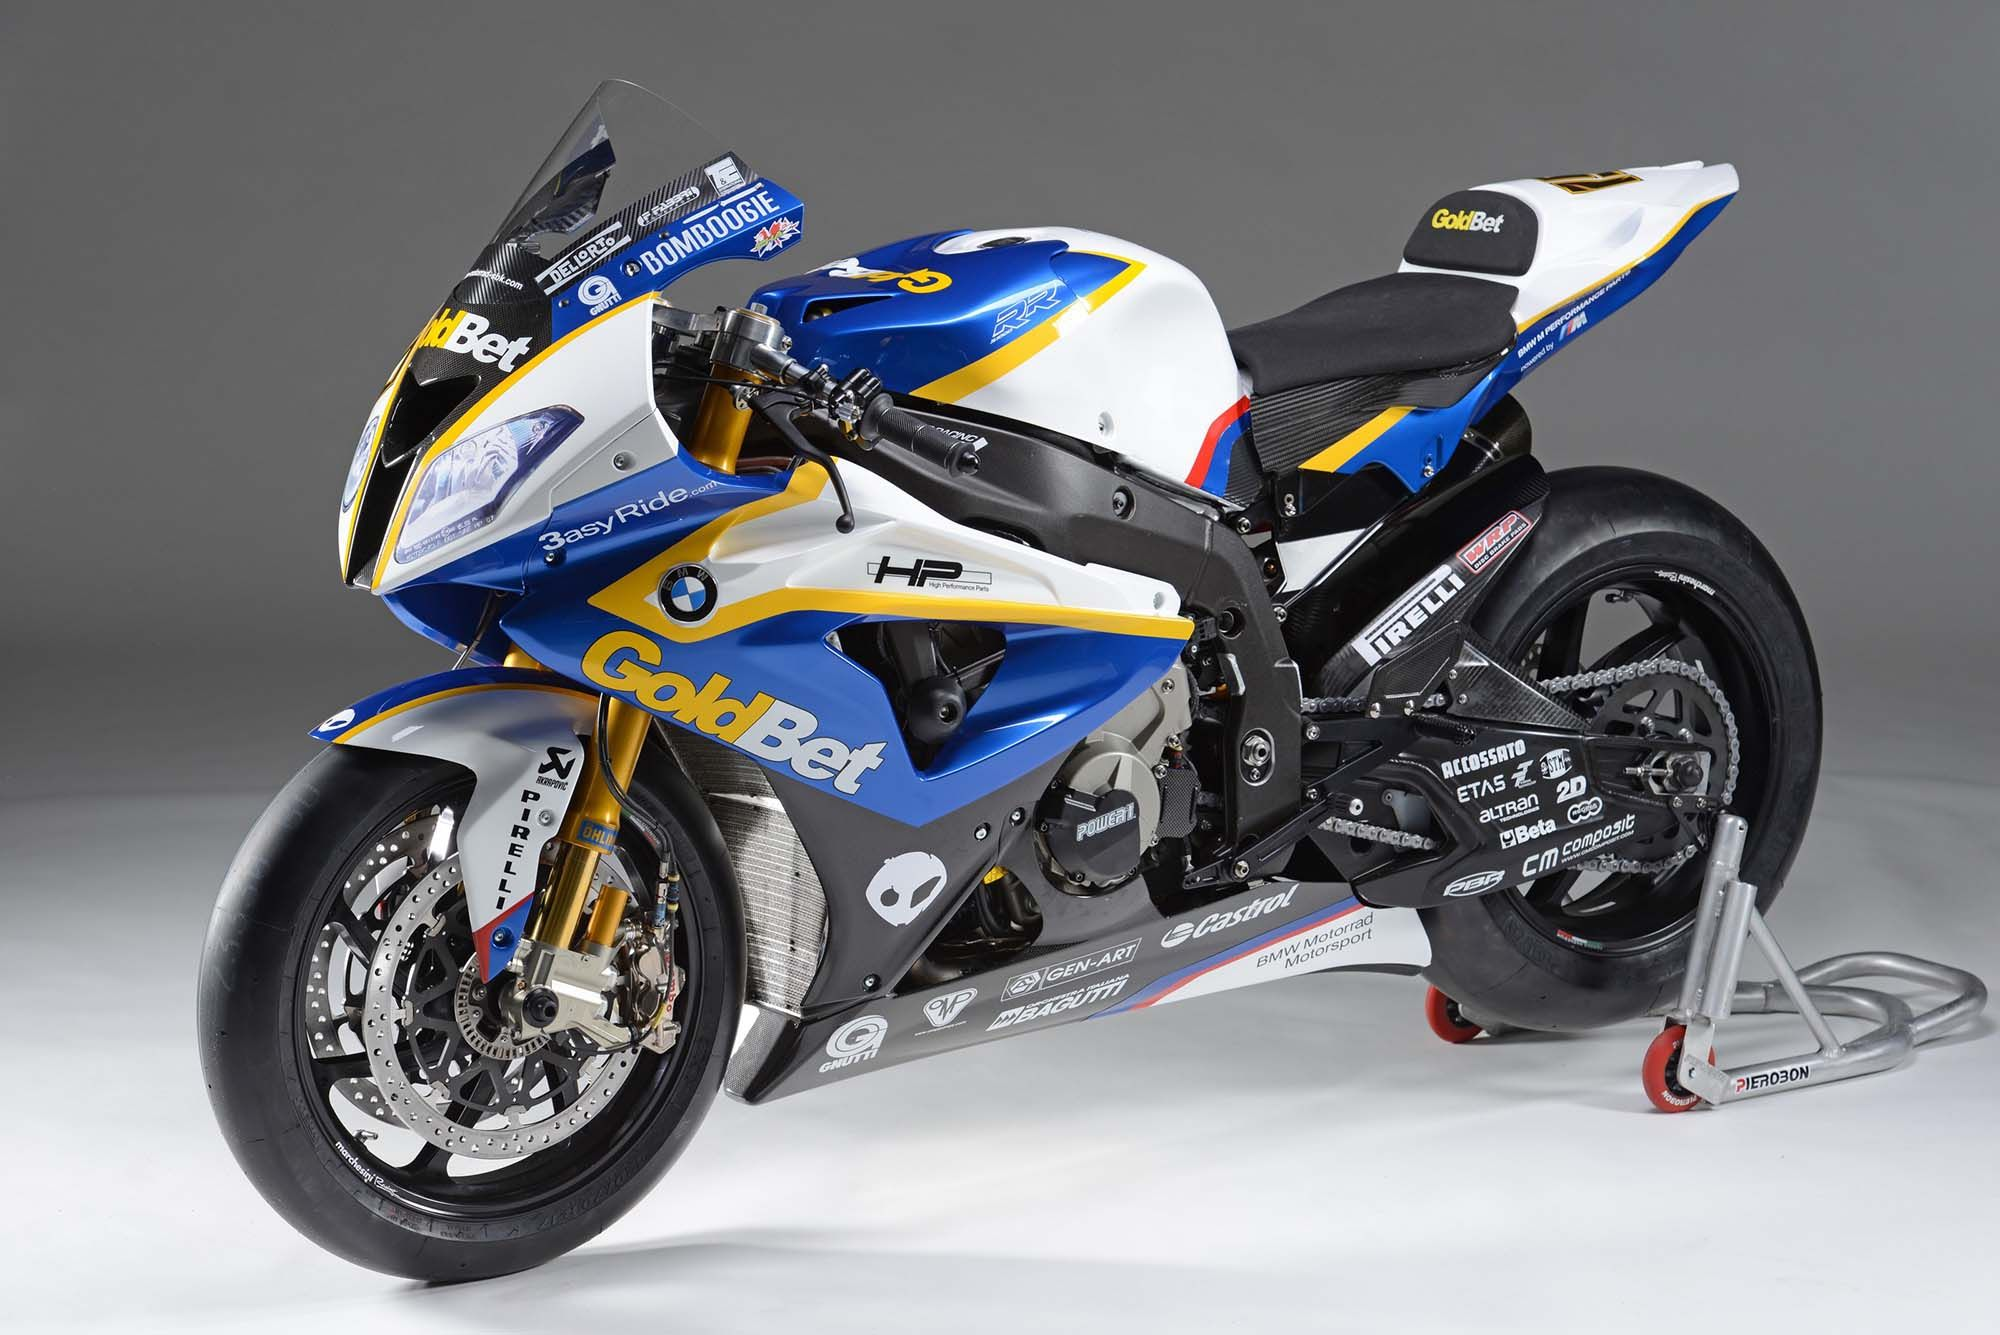 bmw s 1000 rr wsbk team bmw motorrad goldbet 2013 bmw. Black Bedroom Furniture Sets. Home Design Ideas